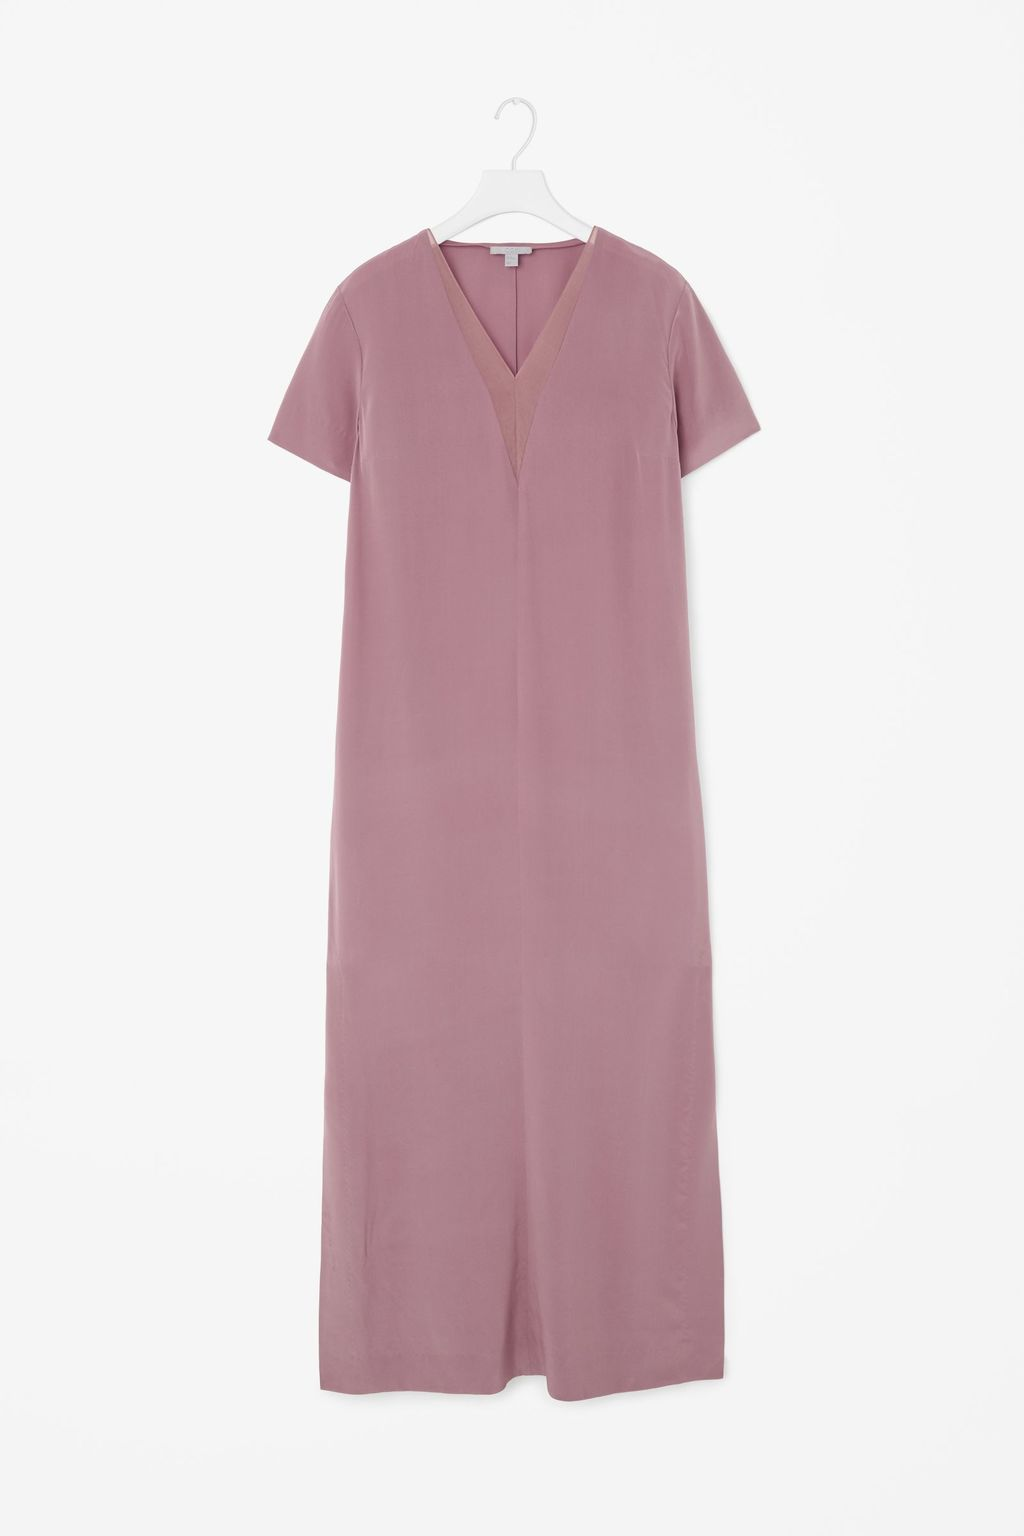 Long V Neck Silk Dress - style: shift; neckline: v-neck; pattern: plain; predominant colour: pink; length: just above the knee; fit: soft a-line; fibres: silk - 100%; occasions: occasion; sleeve length: short sleeve; sleeve style: standard; pattern type: fabric; texture group: other - light to midweight; season: a/w 2015; wardrobe: event